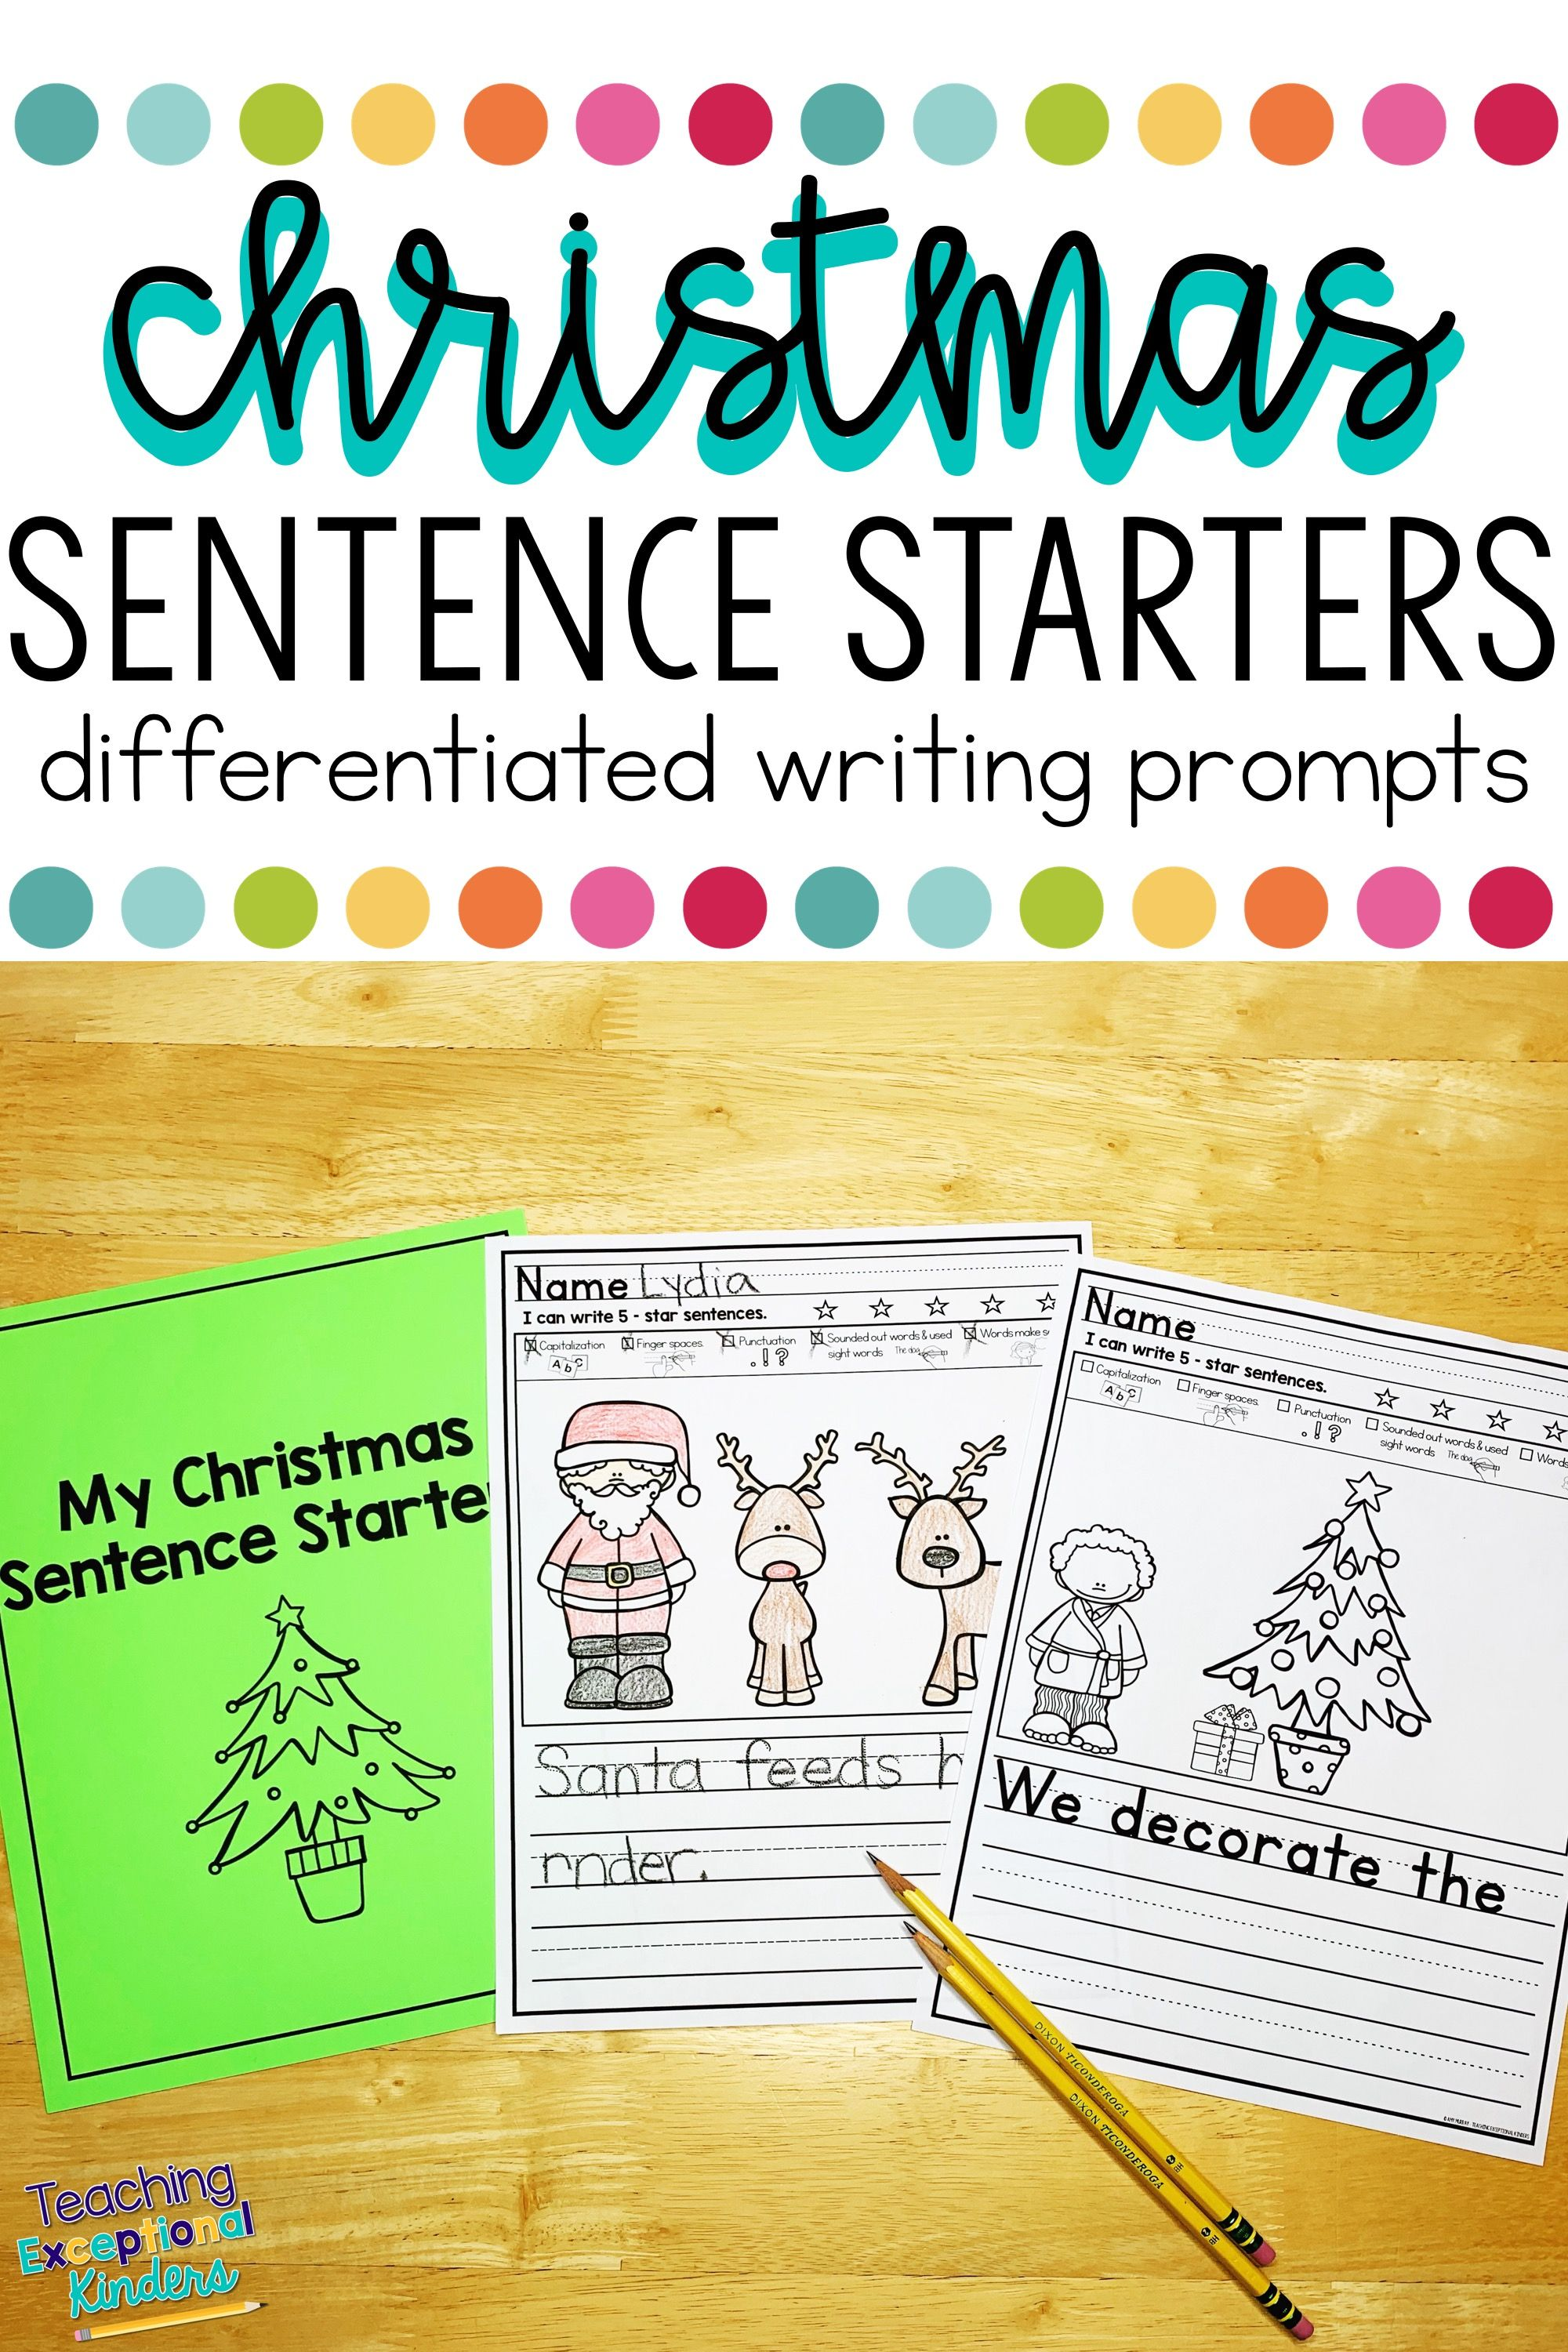 Christmas Picture Writing Prompts With Sentence Starters